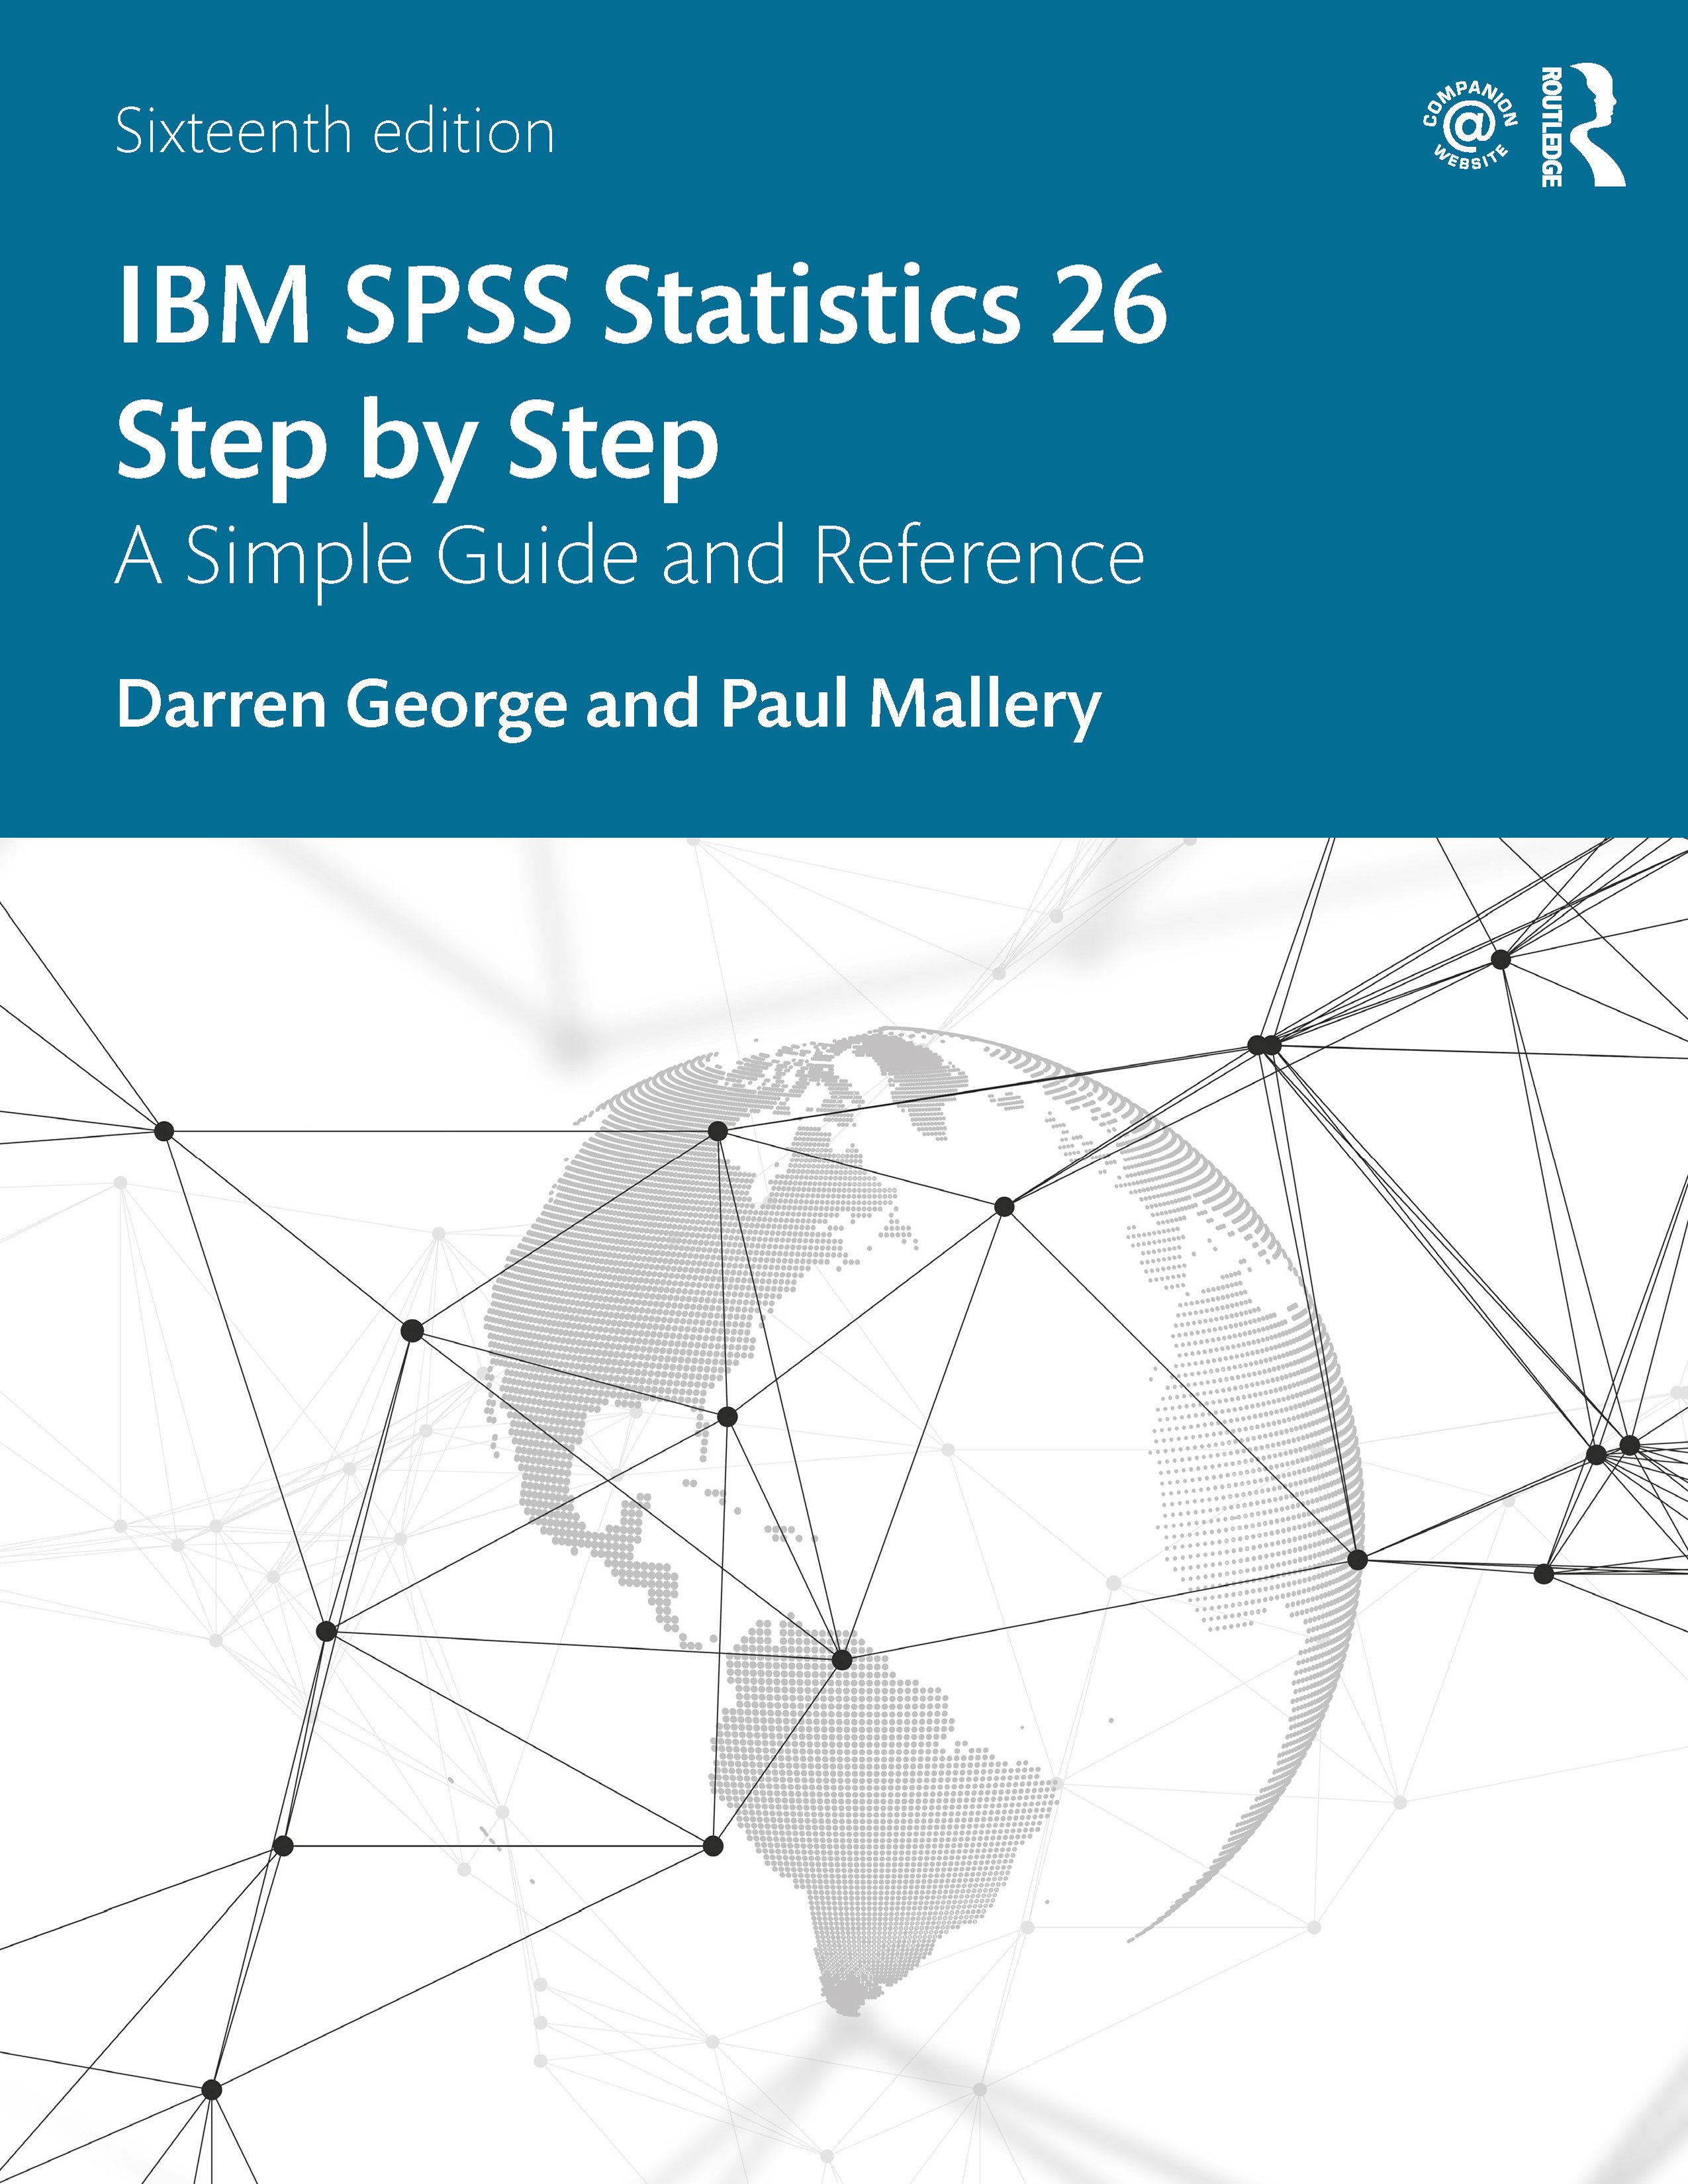 IBM SPSS Statistics 26 Step by Step: A Simple Guide and Reference book cover